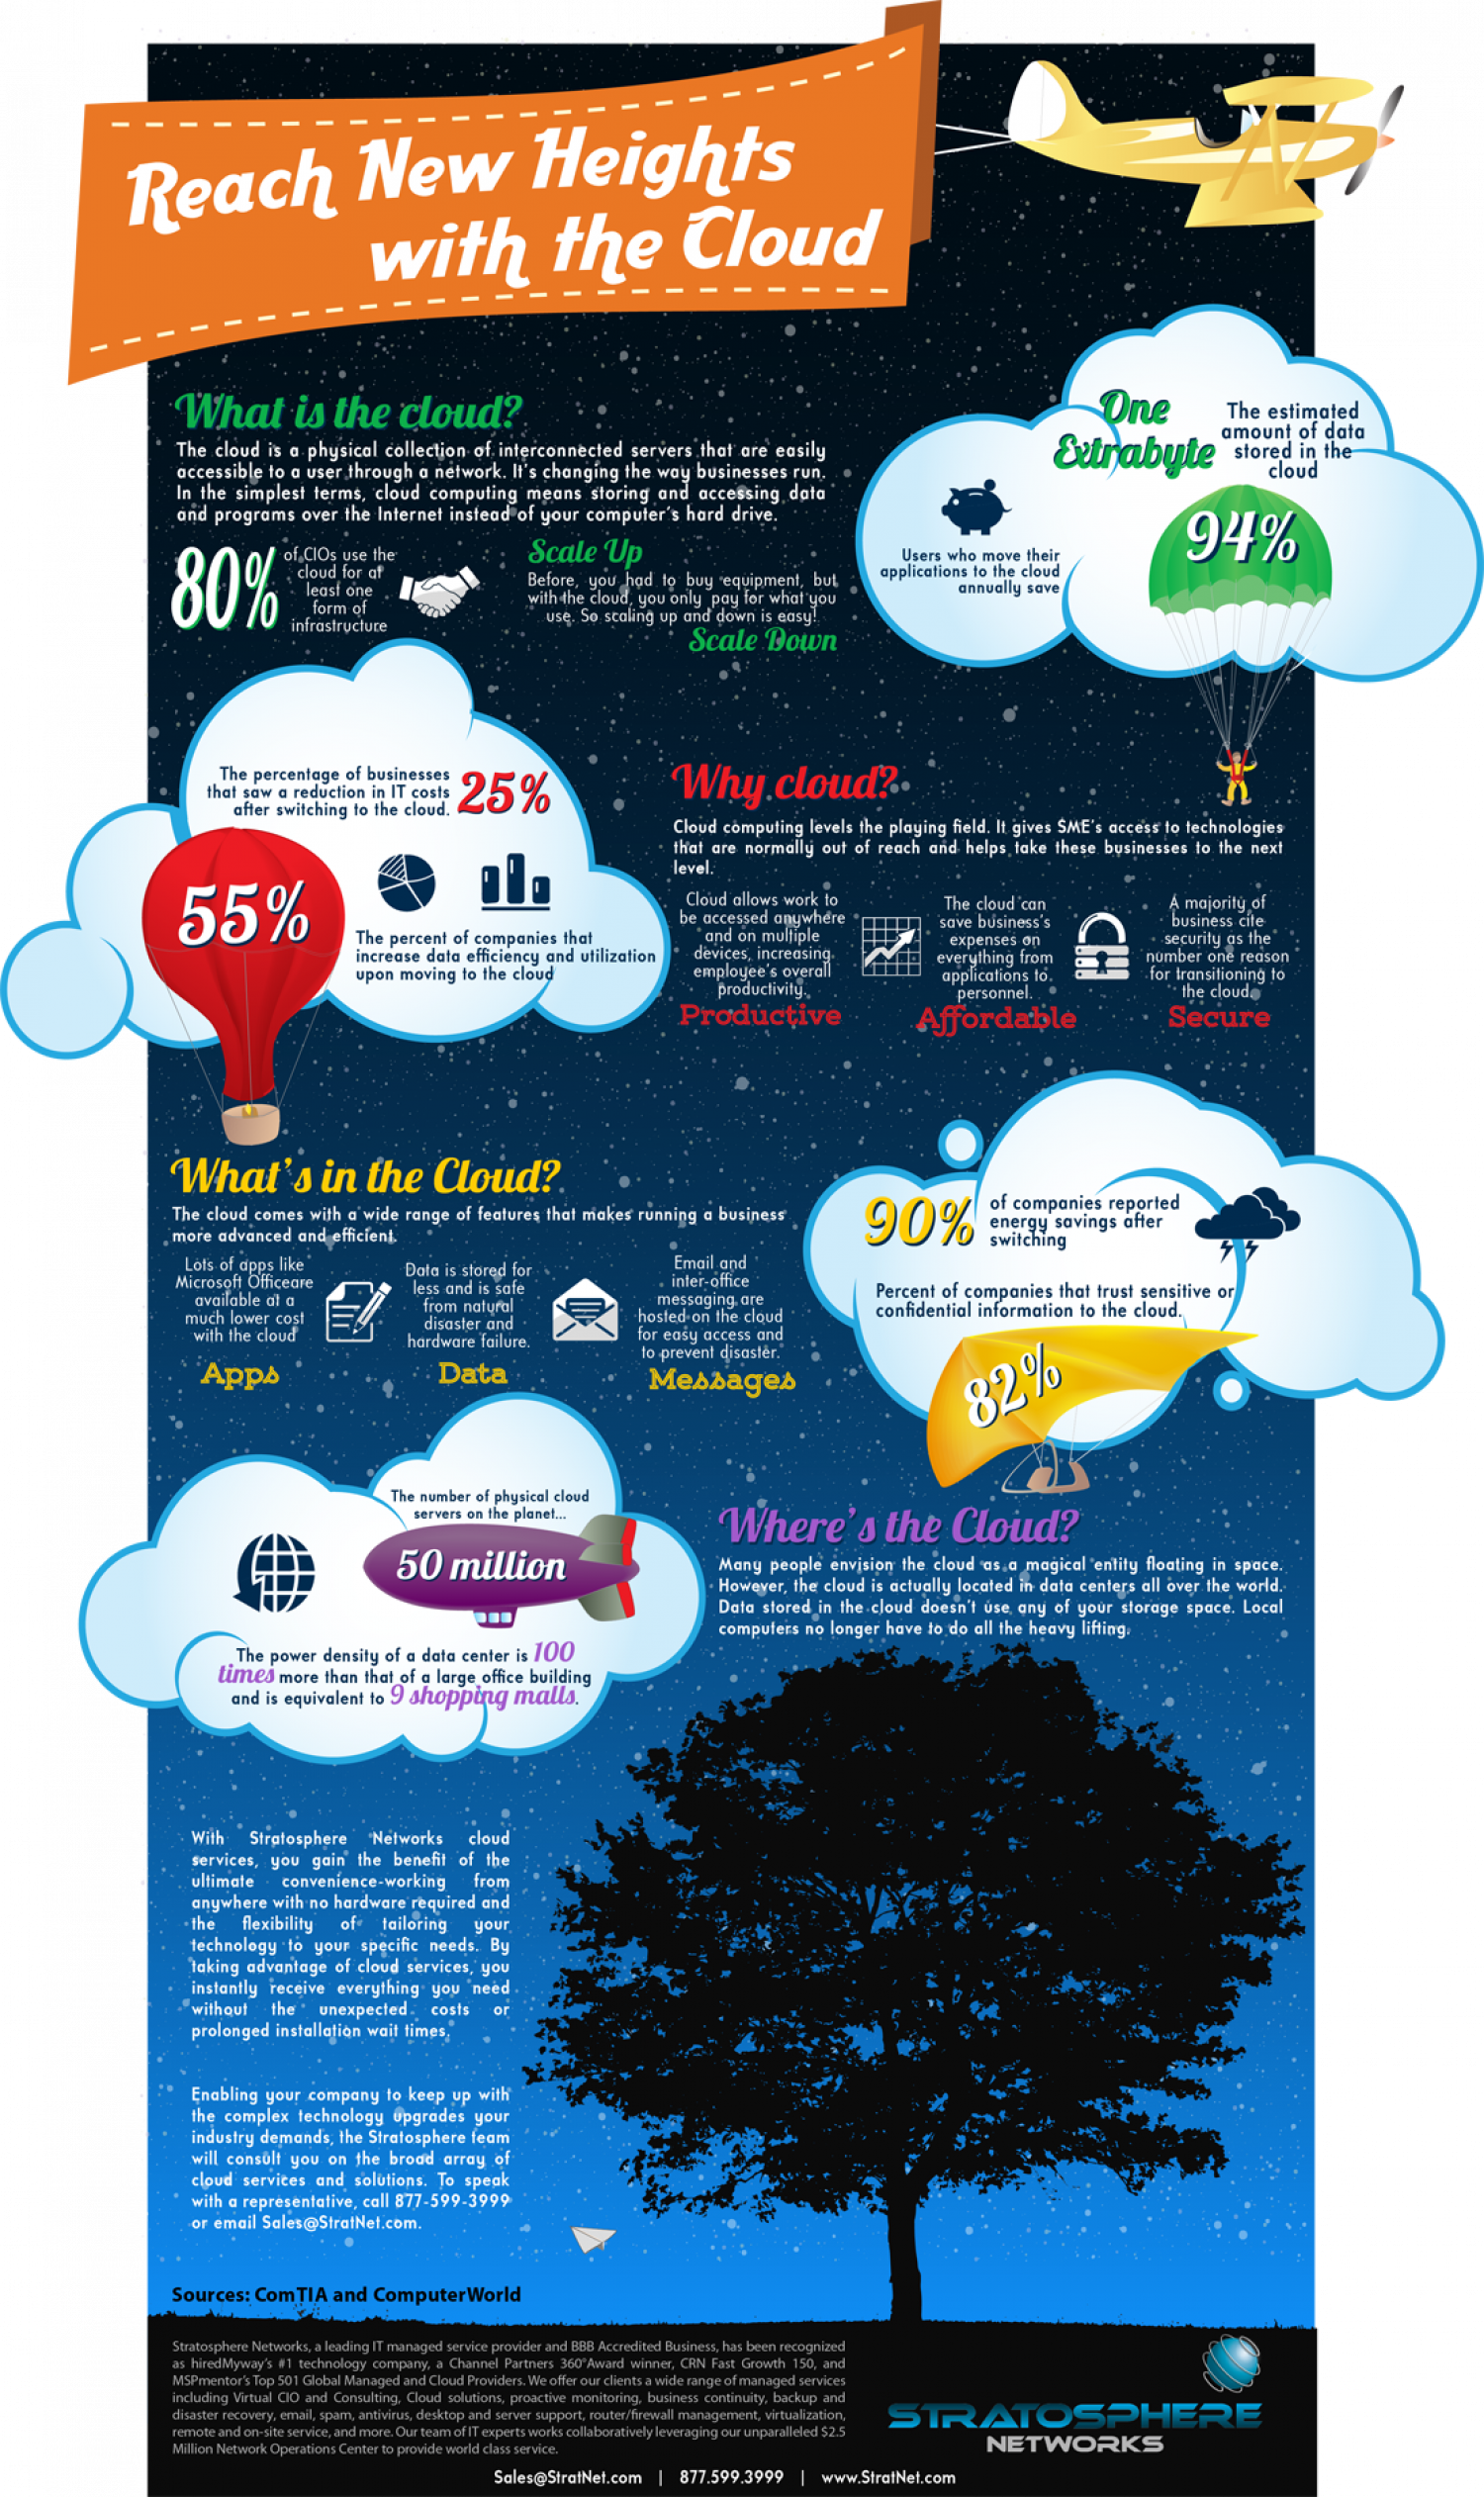 Reach New Heights with the Cloud Infographic